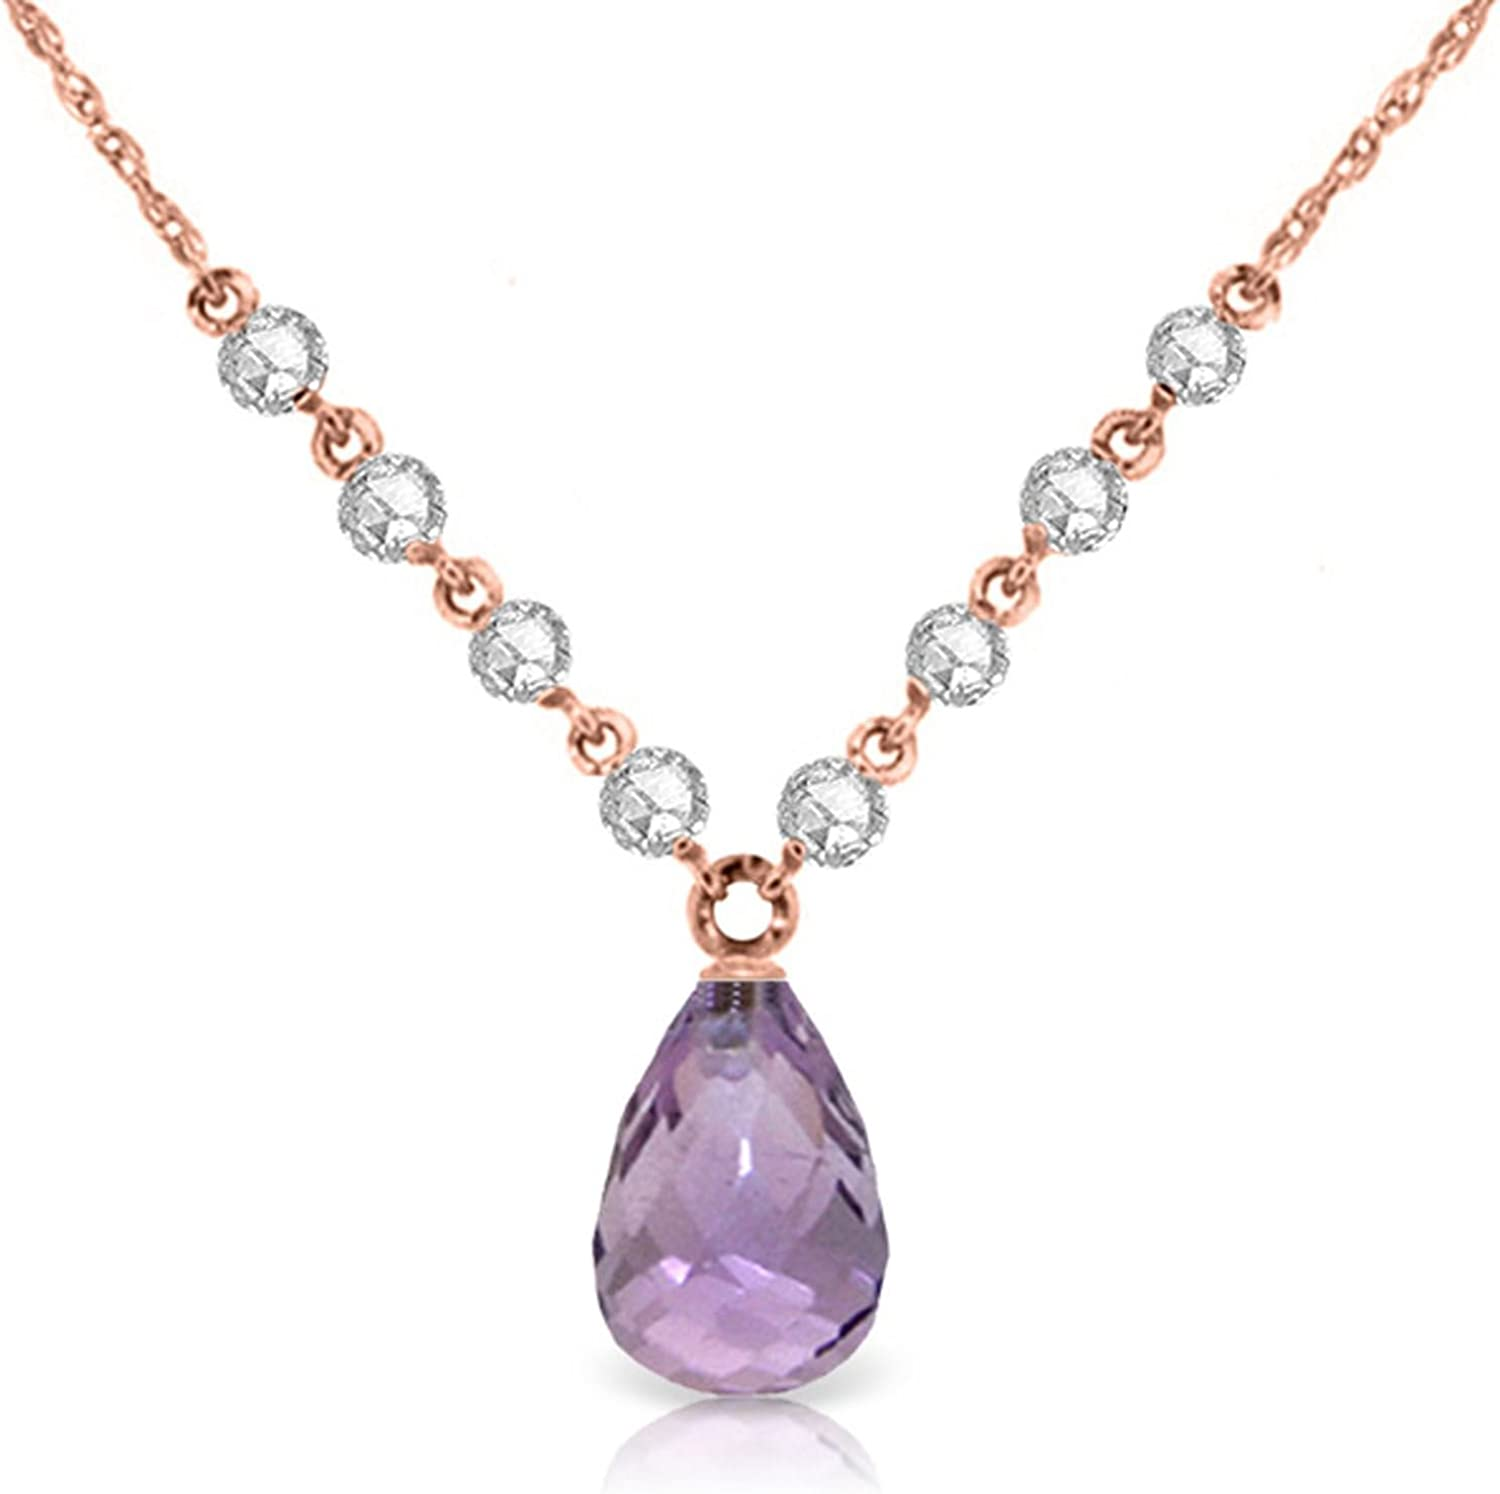 ALARRI 14K Solid Rose Gold Necklace w// Natural Diamond /& Purple Amethyst with 20 Inch Chain Length